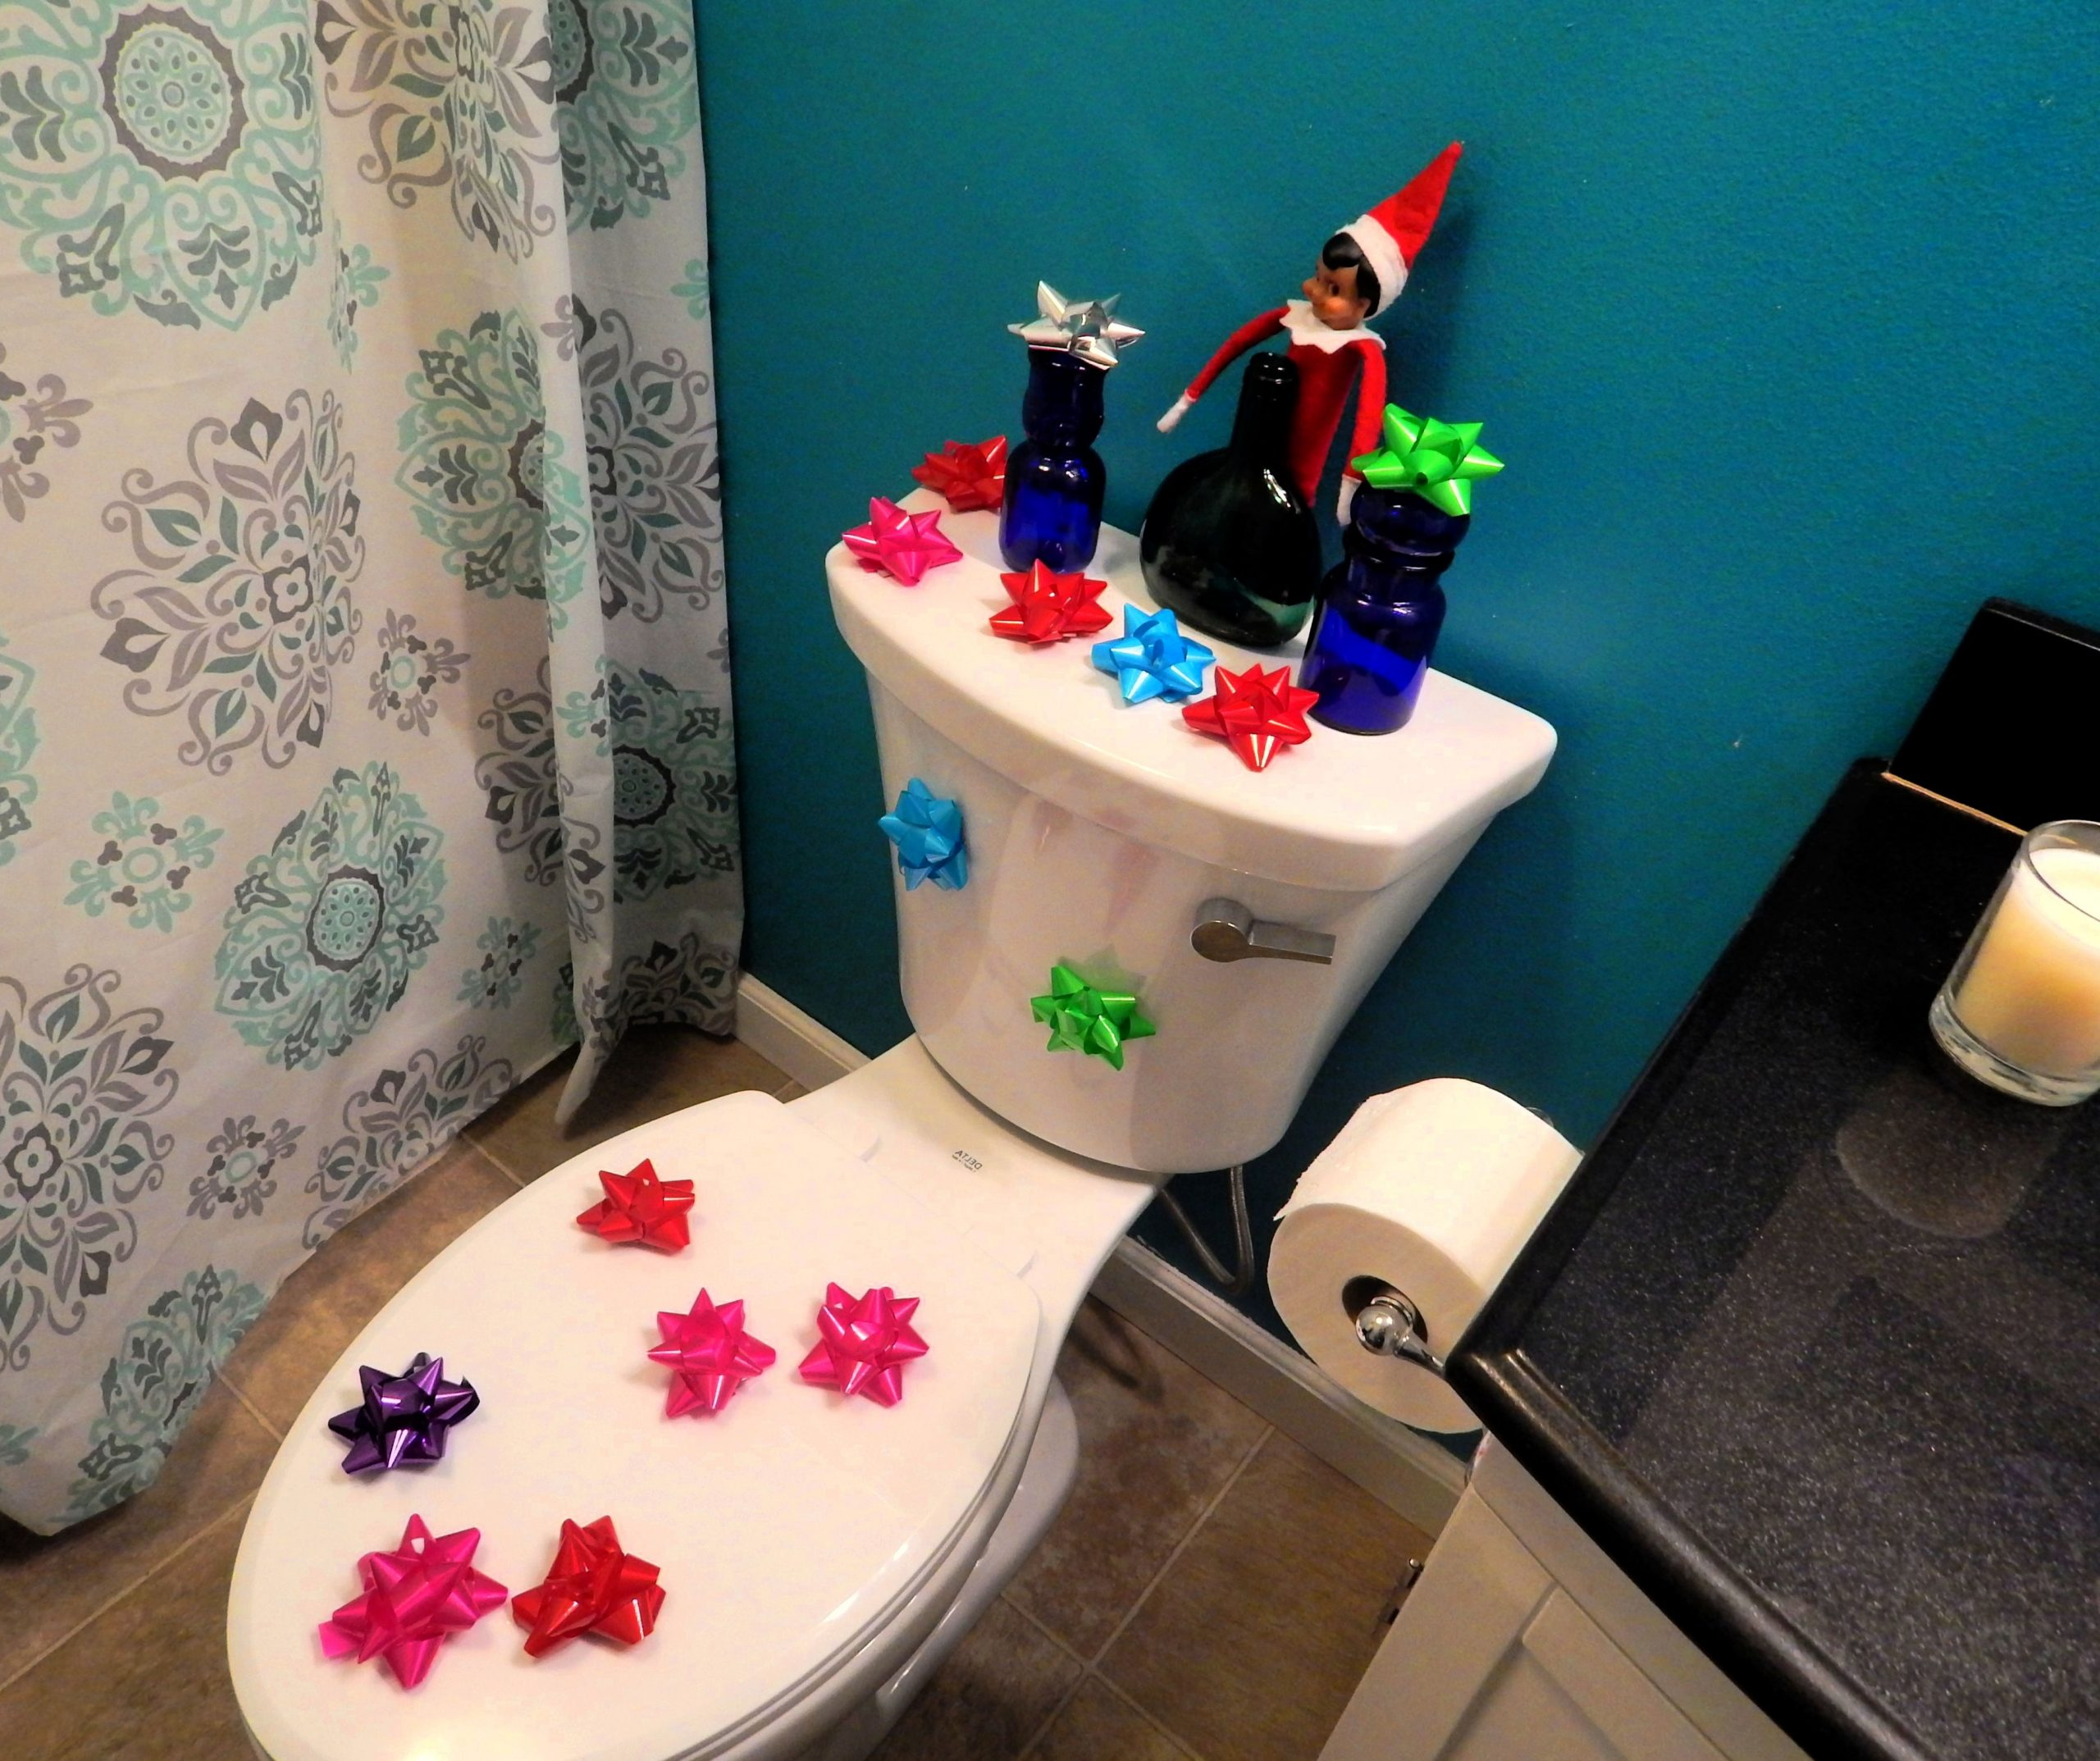 100 Epic Elf On The Shelf Ideas Your Kids Will Go Crazy For 40+ Elf On The Shelf For Bathroom Inspirations